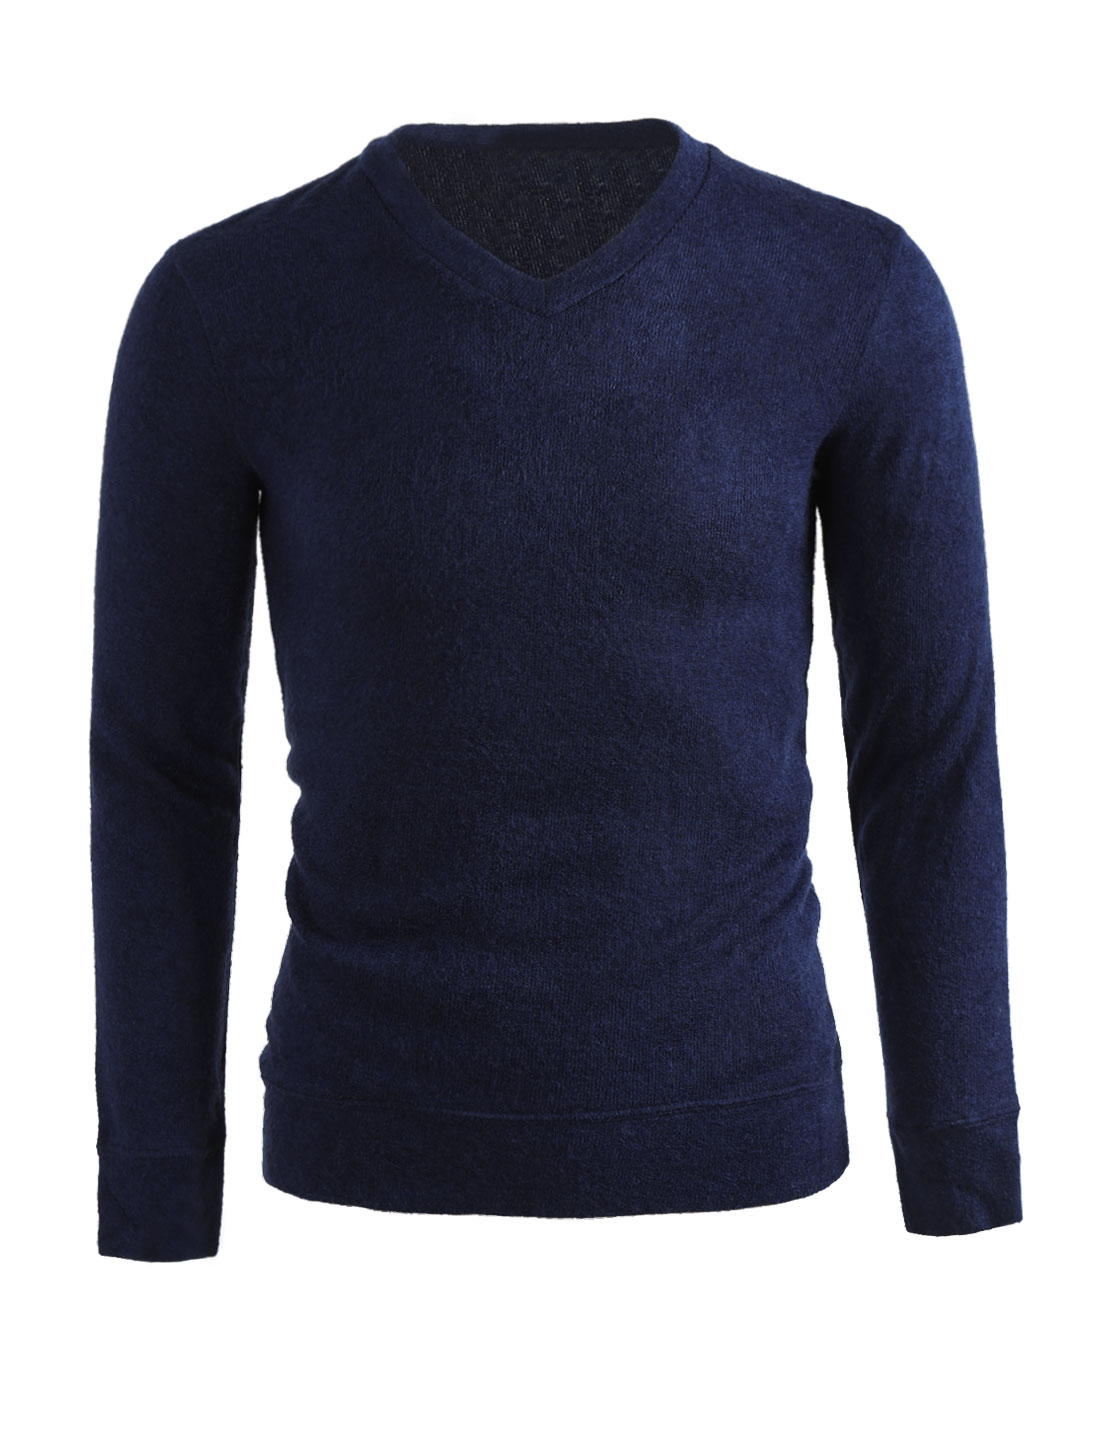 Men V Neck Long Sleeves Solid Color Knit Top Blue M